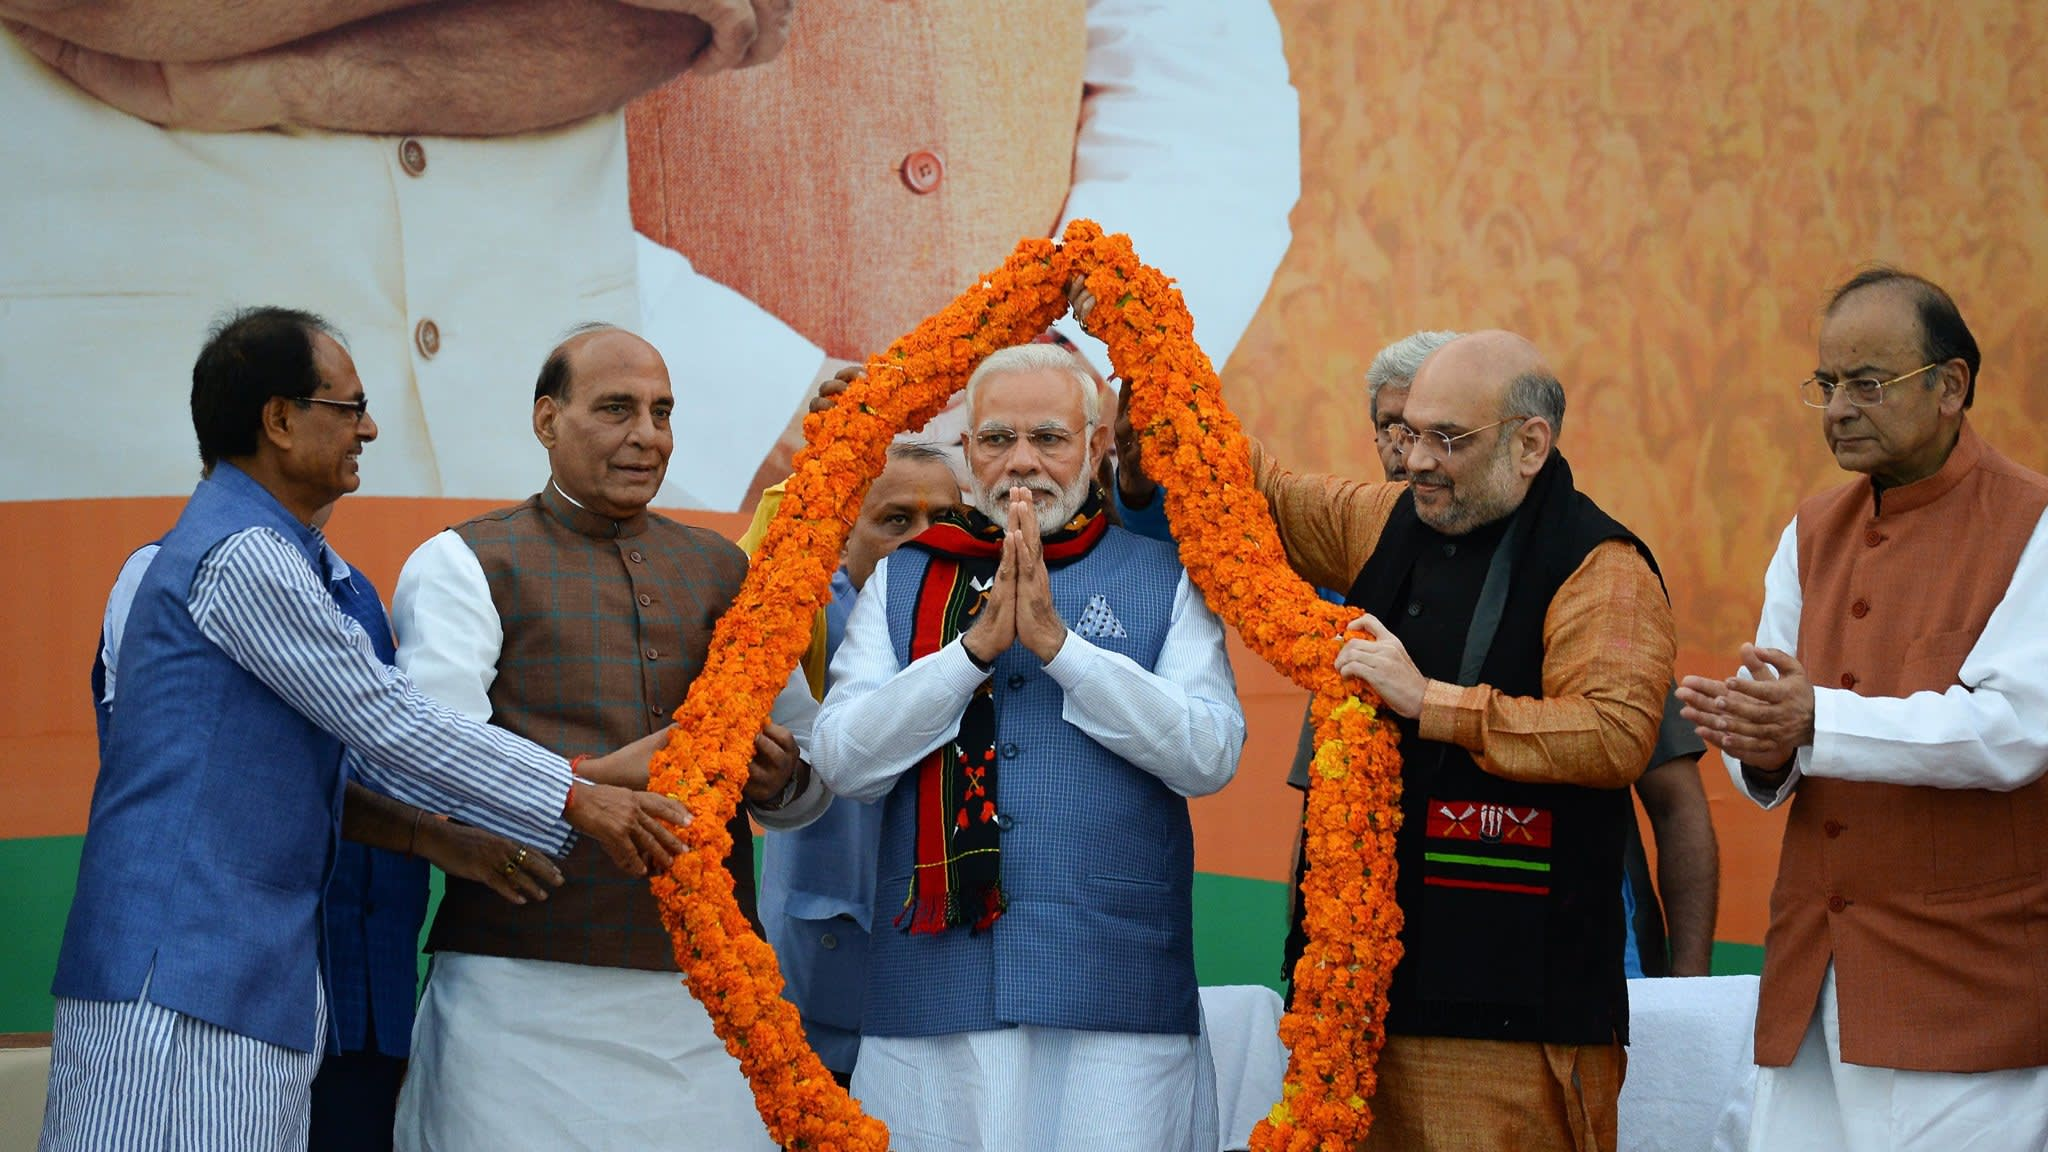 Modi's BJP expands footprint into India's north-east